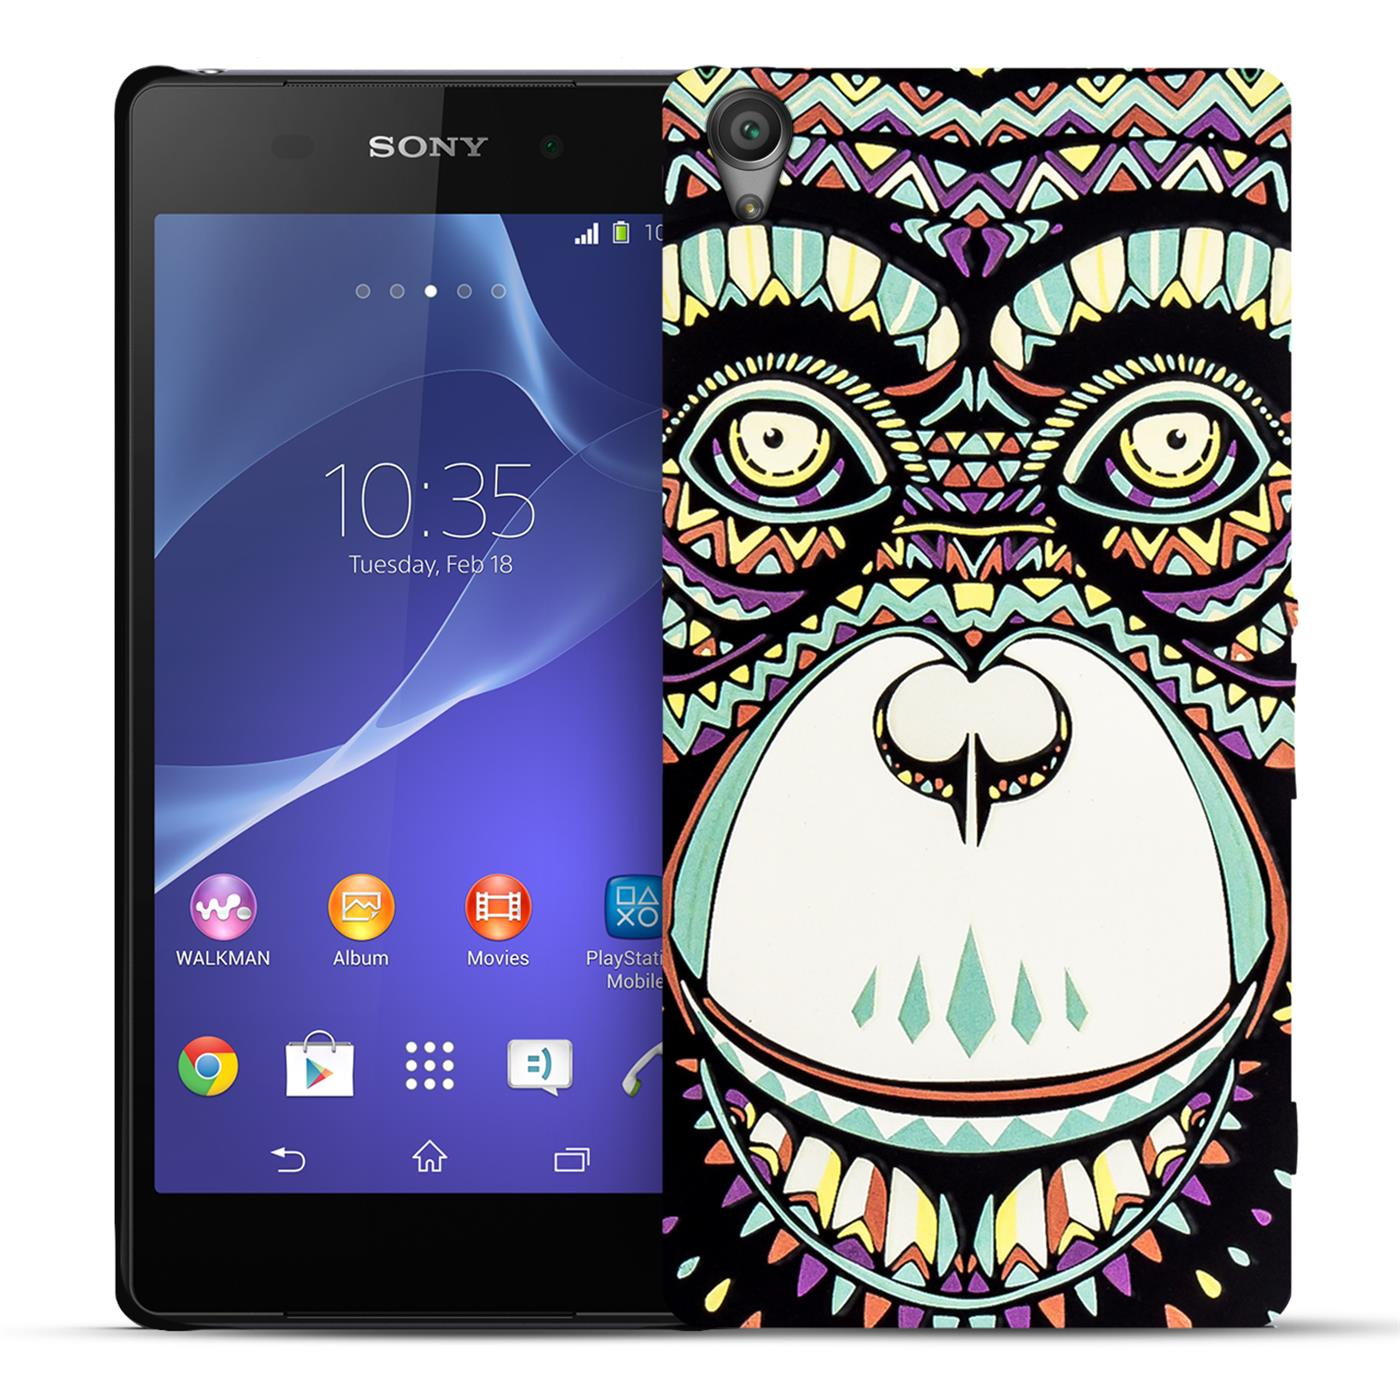 Sony Xperia Z5 pact Handy Huelle Handyhuelle Tasche